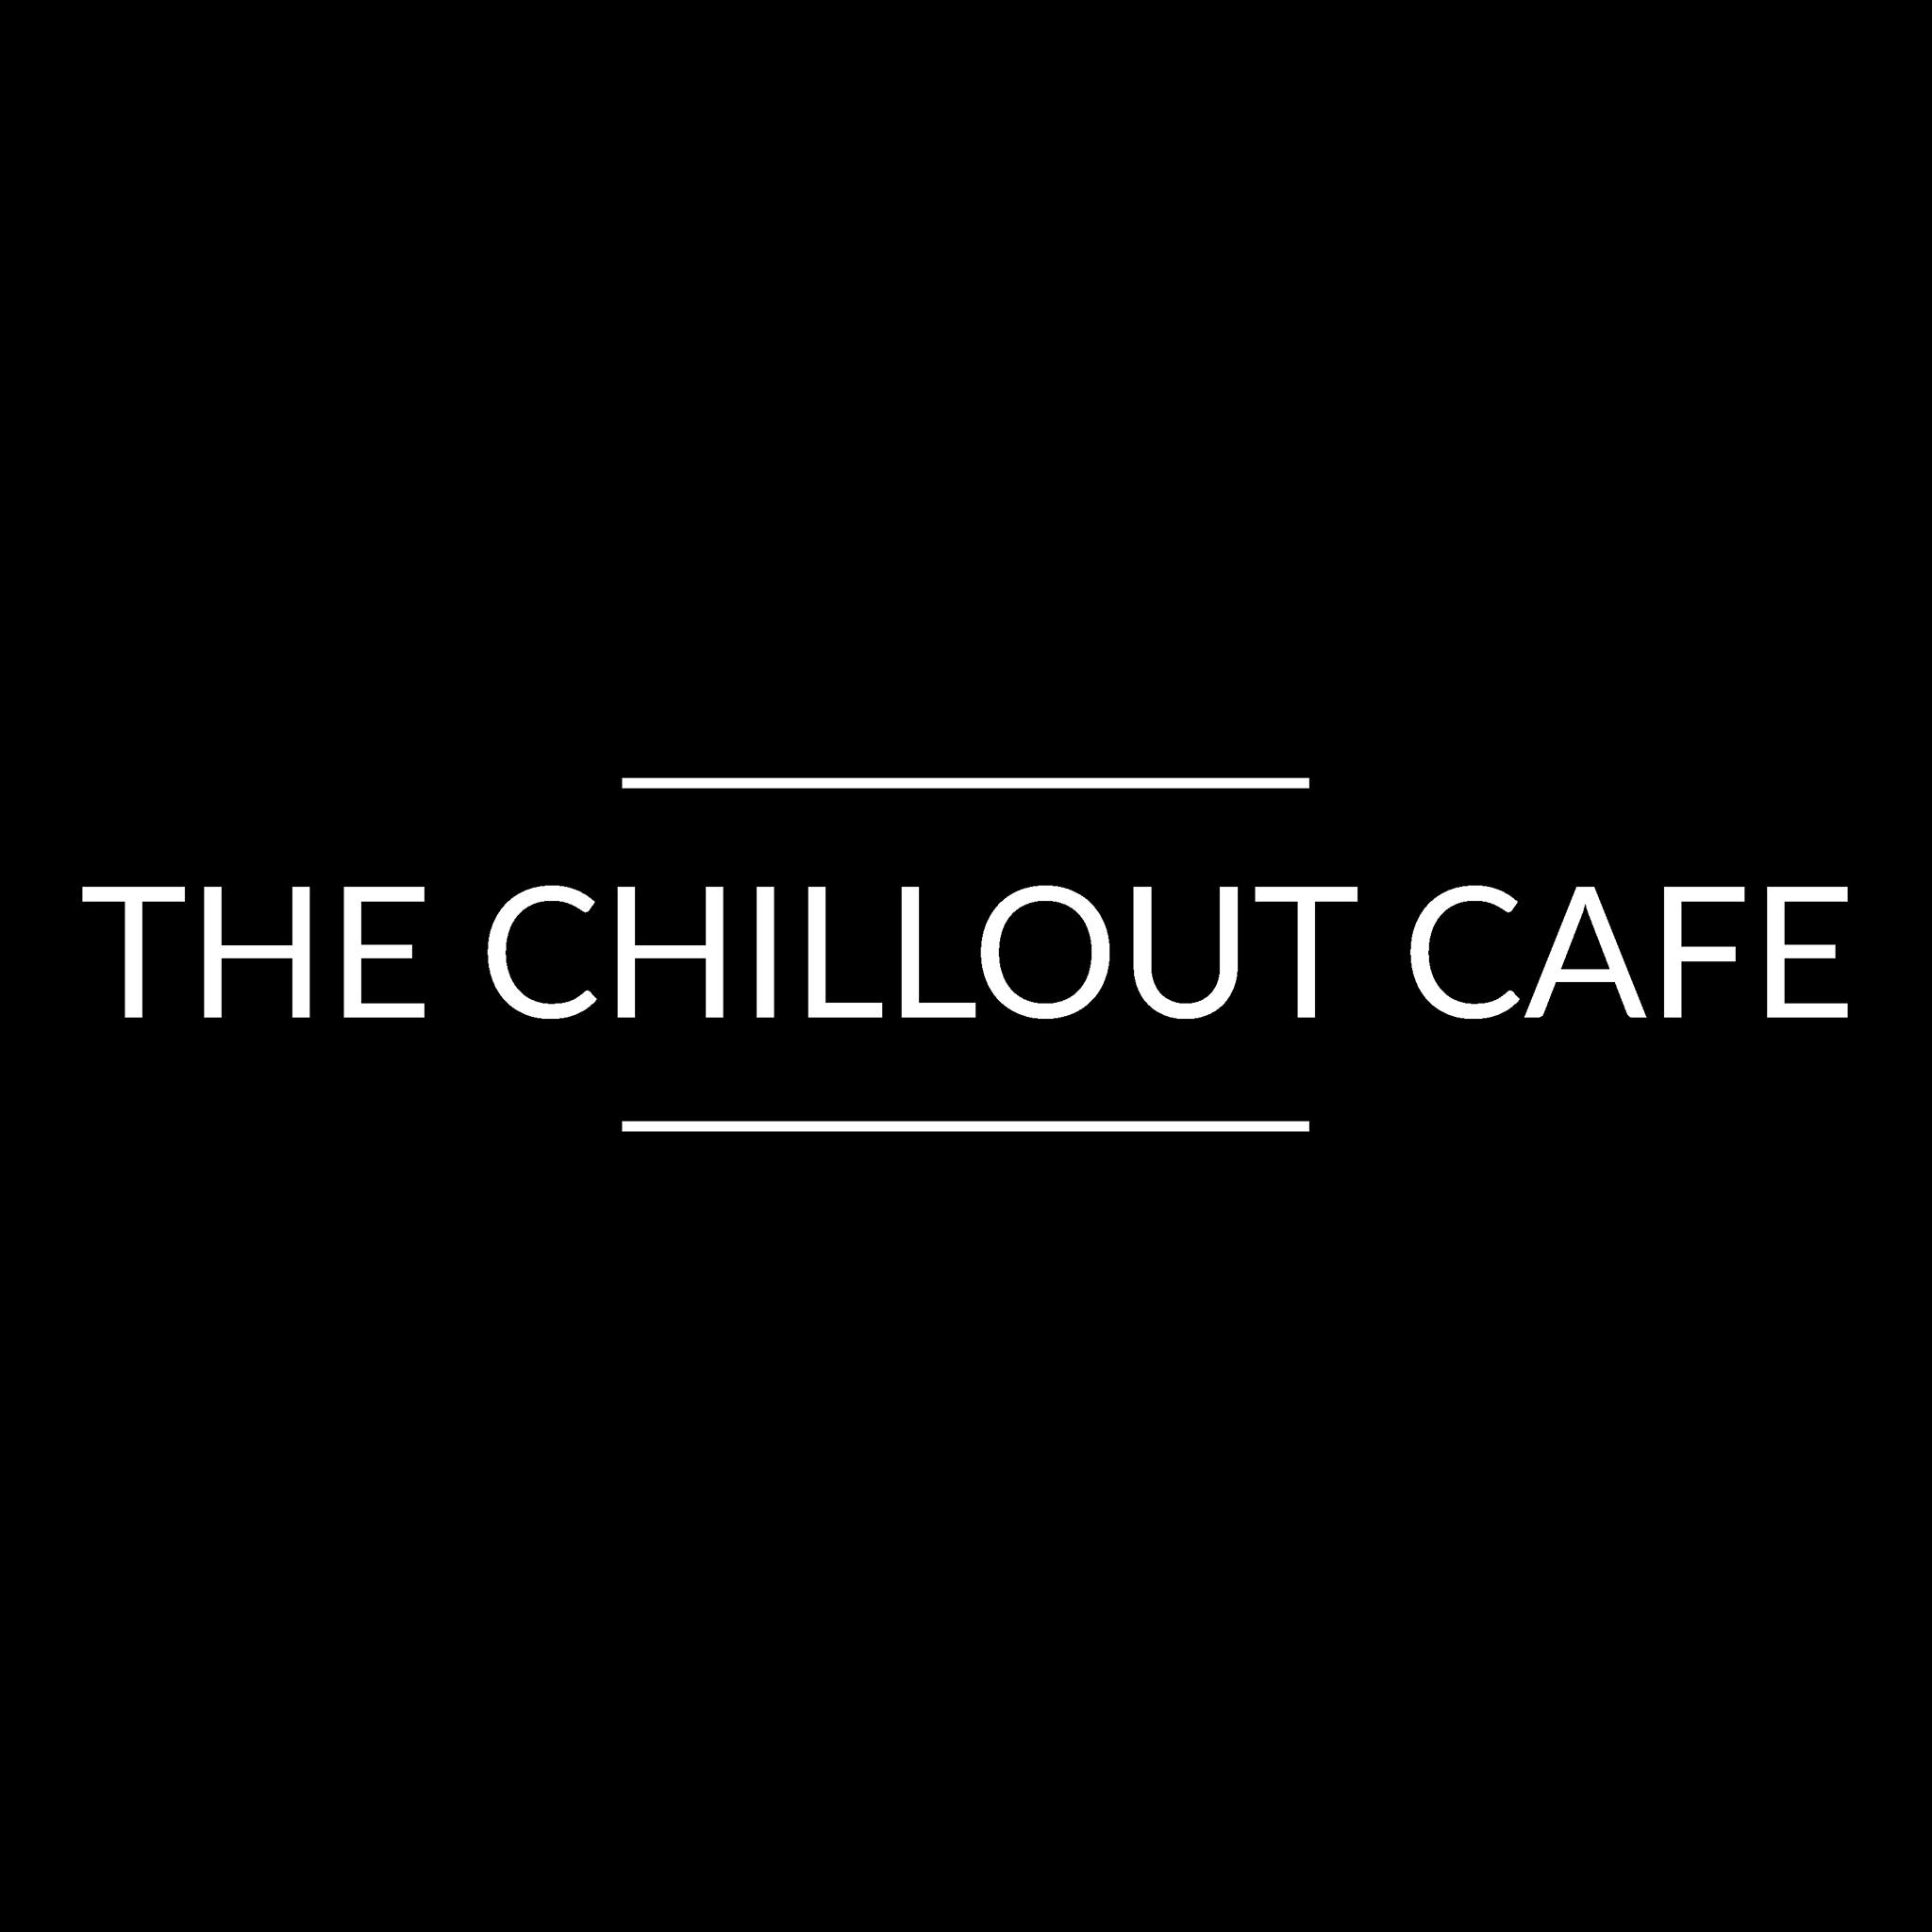 THE CHILLOUT CAFE